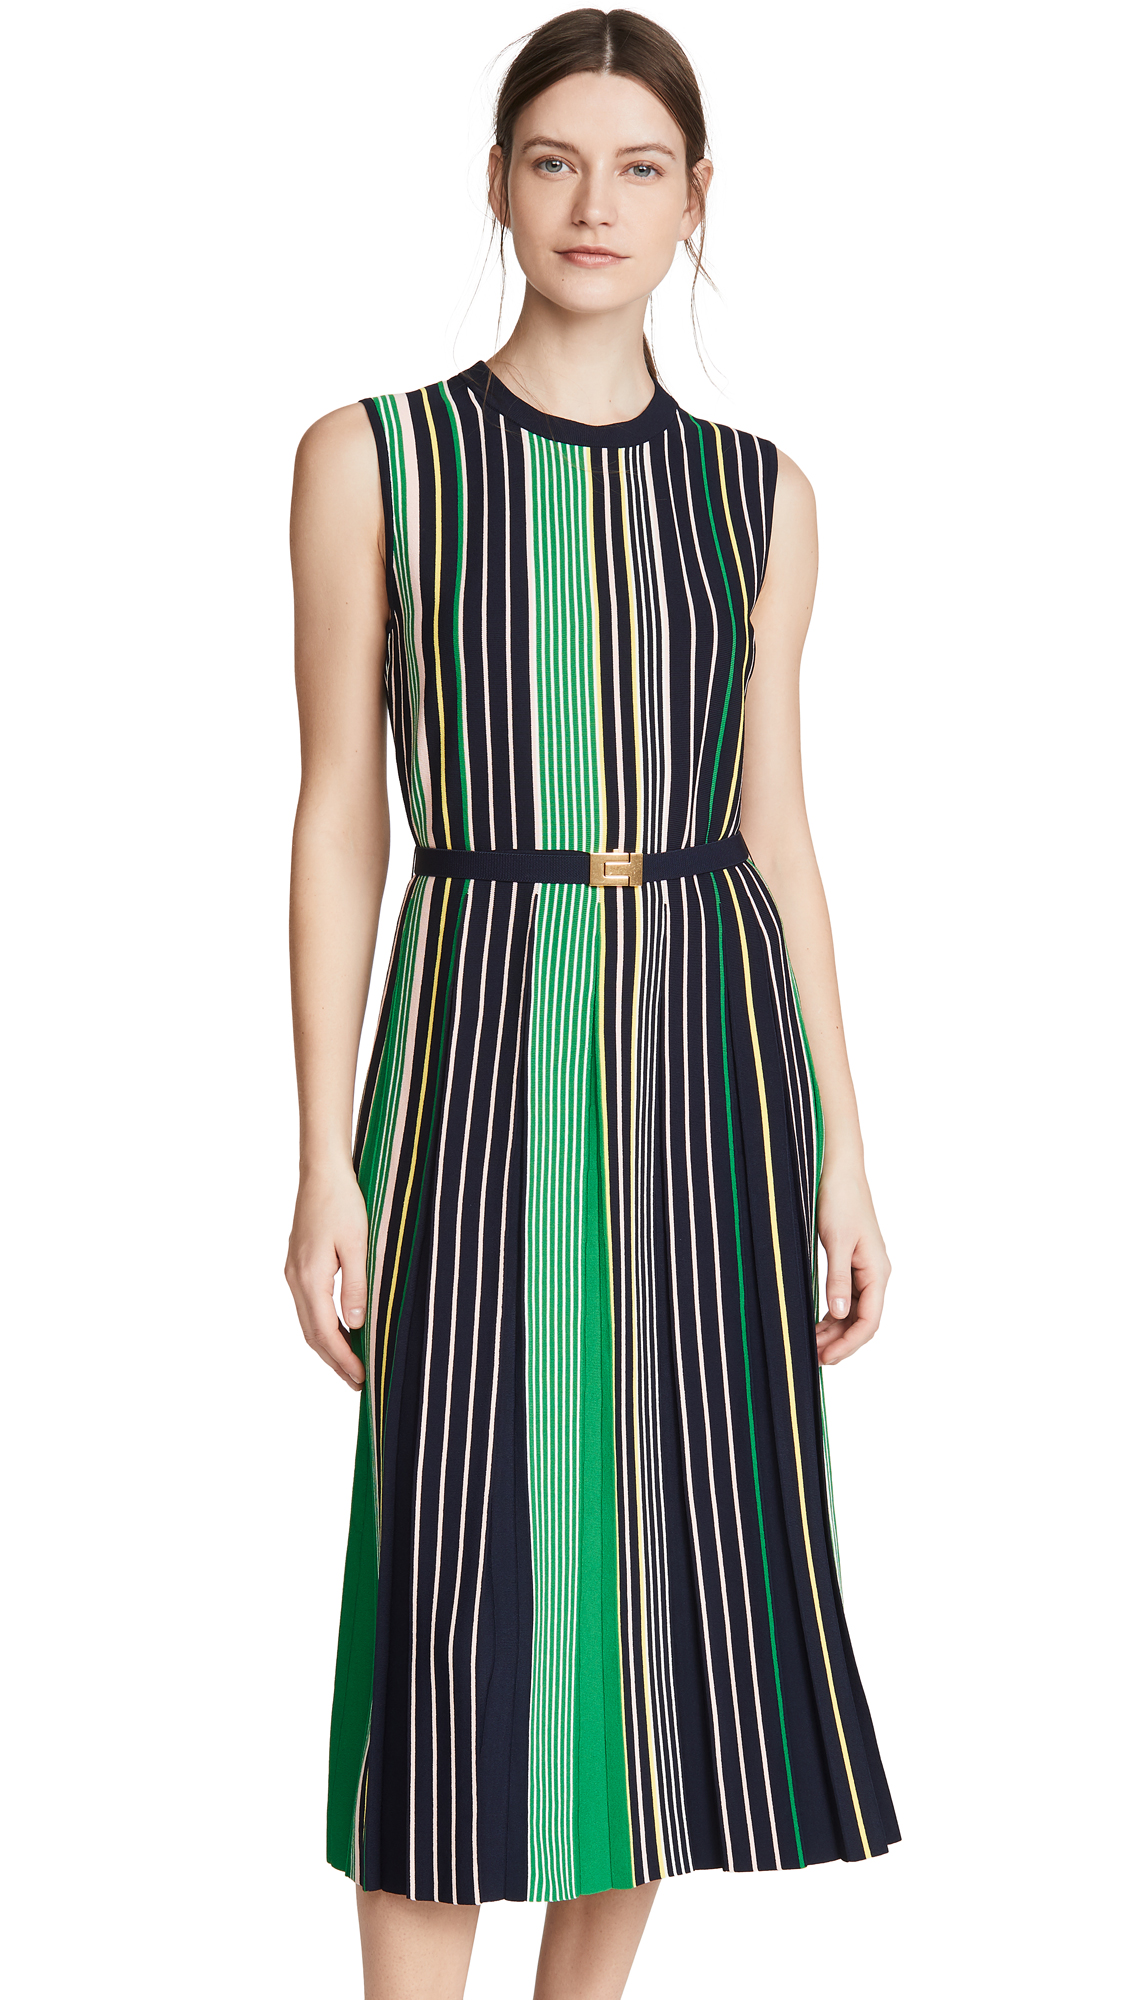 Tory Burch Striped Sweater Dress - 30% Off Sale